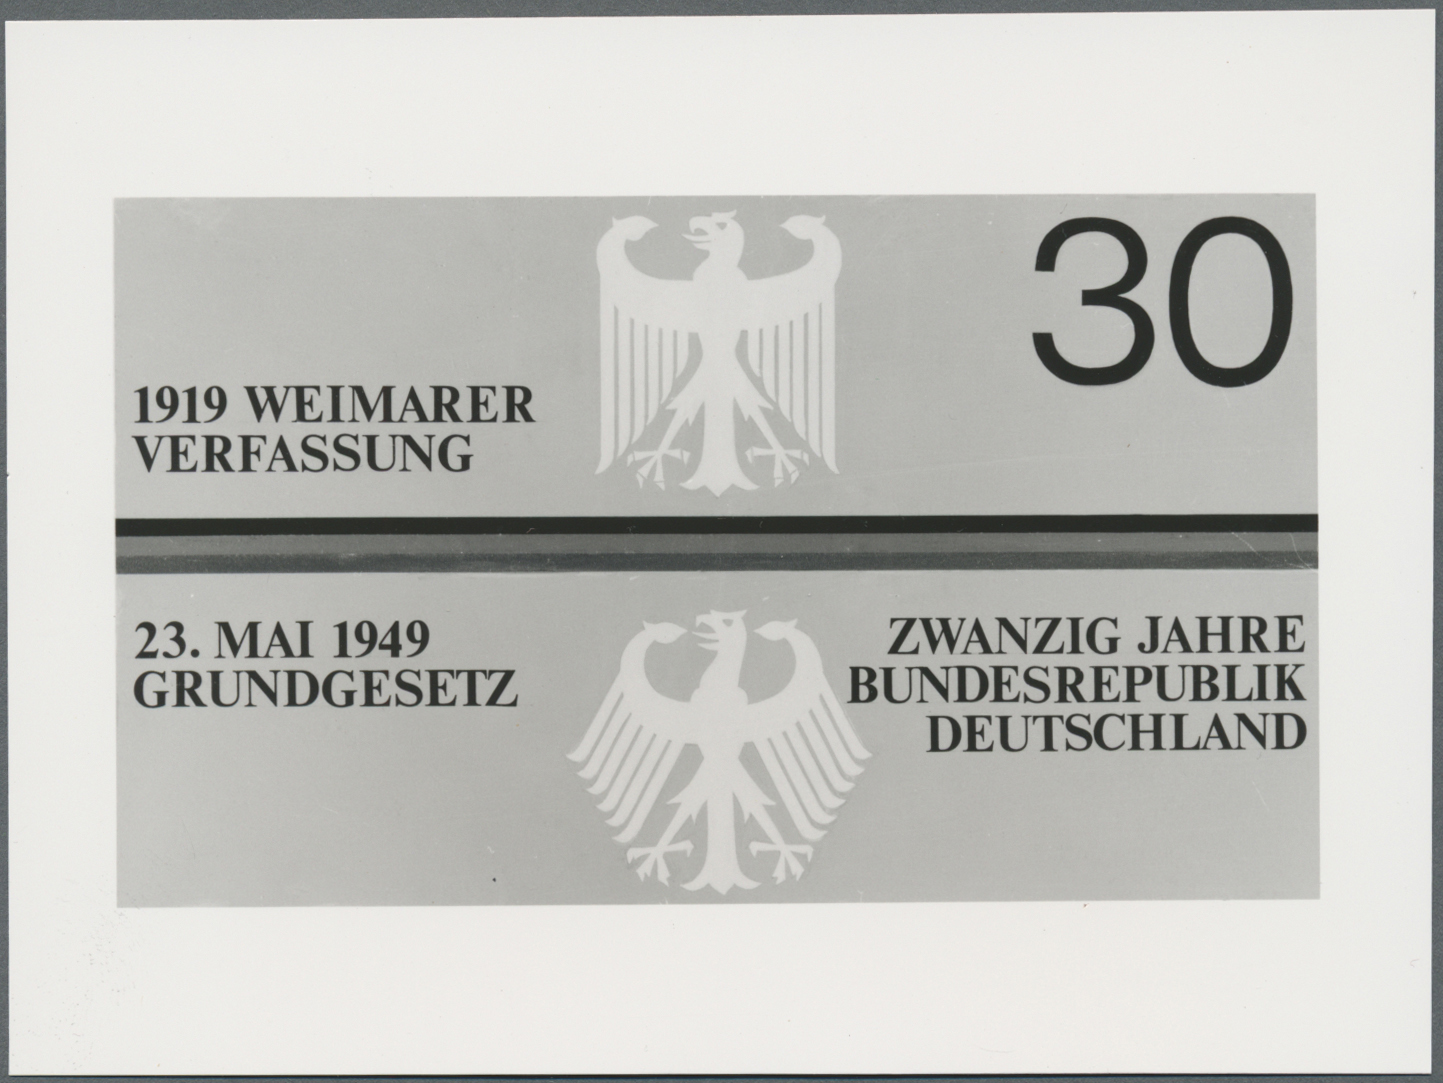 Lot 34732 - Thematik: Wappen / emblems  -  Auktionshaus Christoph Gärtner GmbH & Co. KG Collections Germany,  Collections Supplement, Surprise boxes #39 Day 7